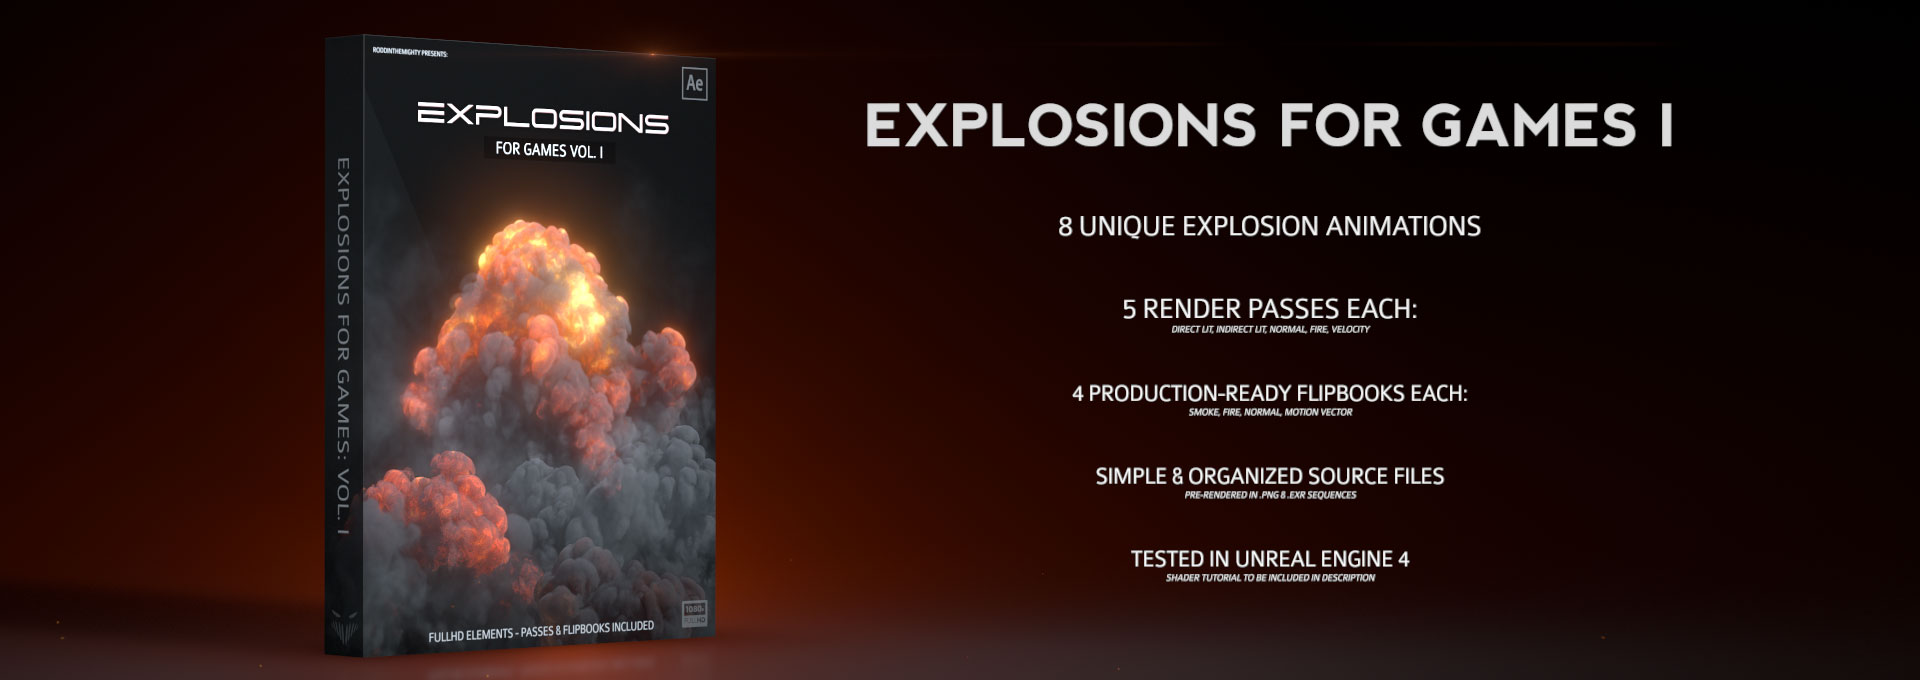 explosions_for_games_slider_preview